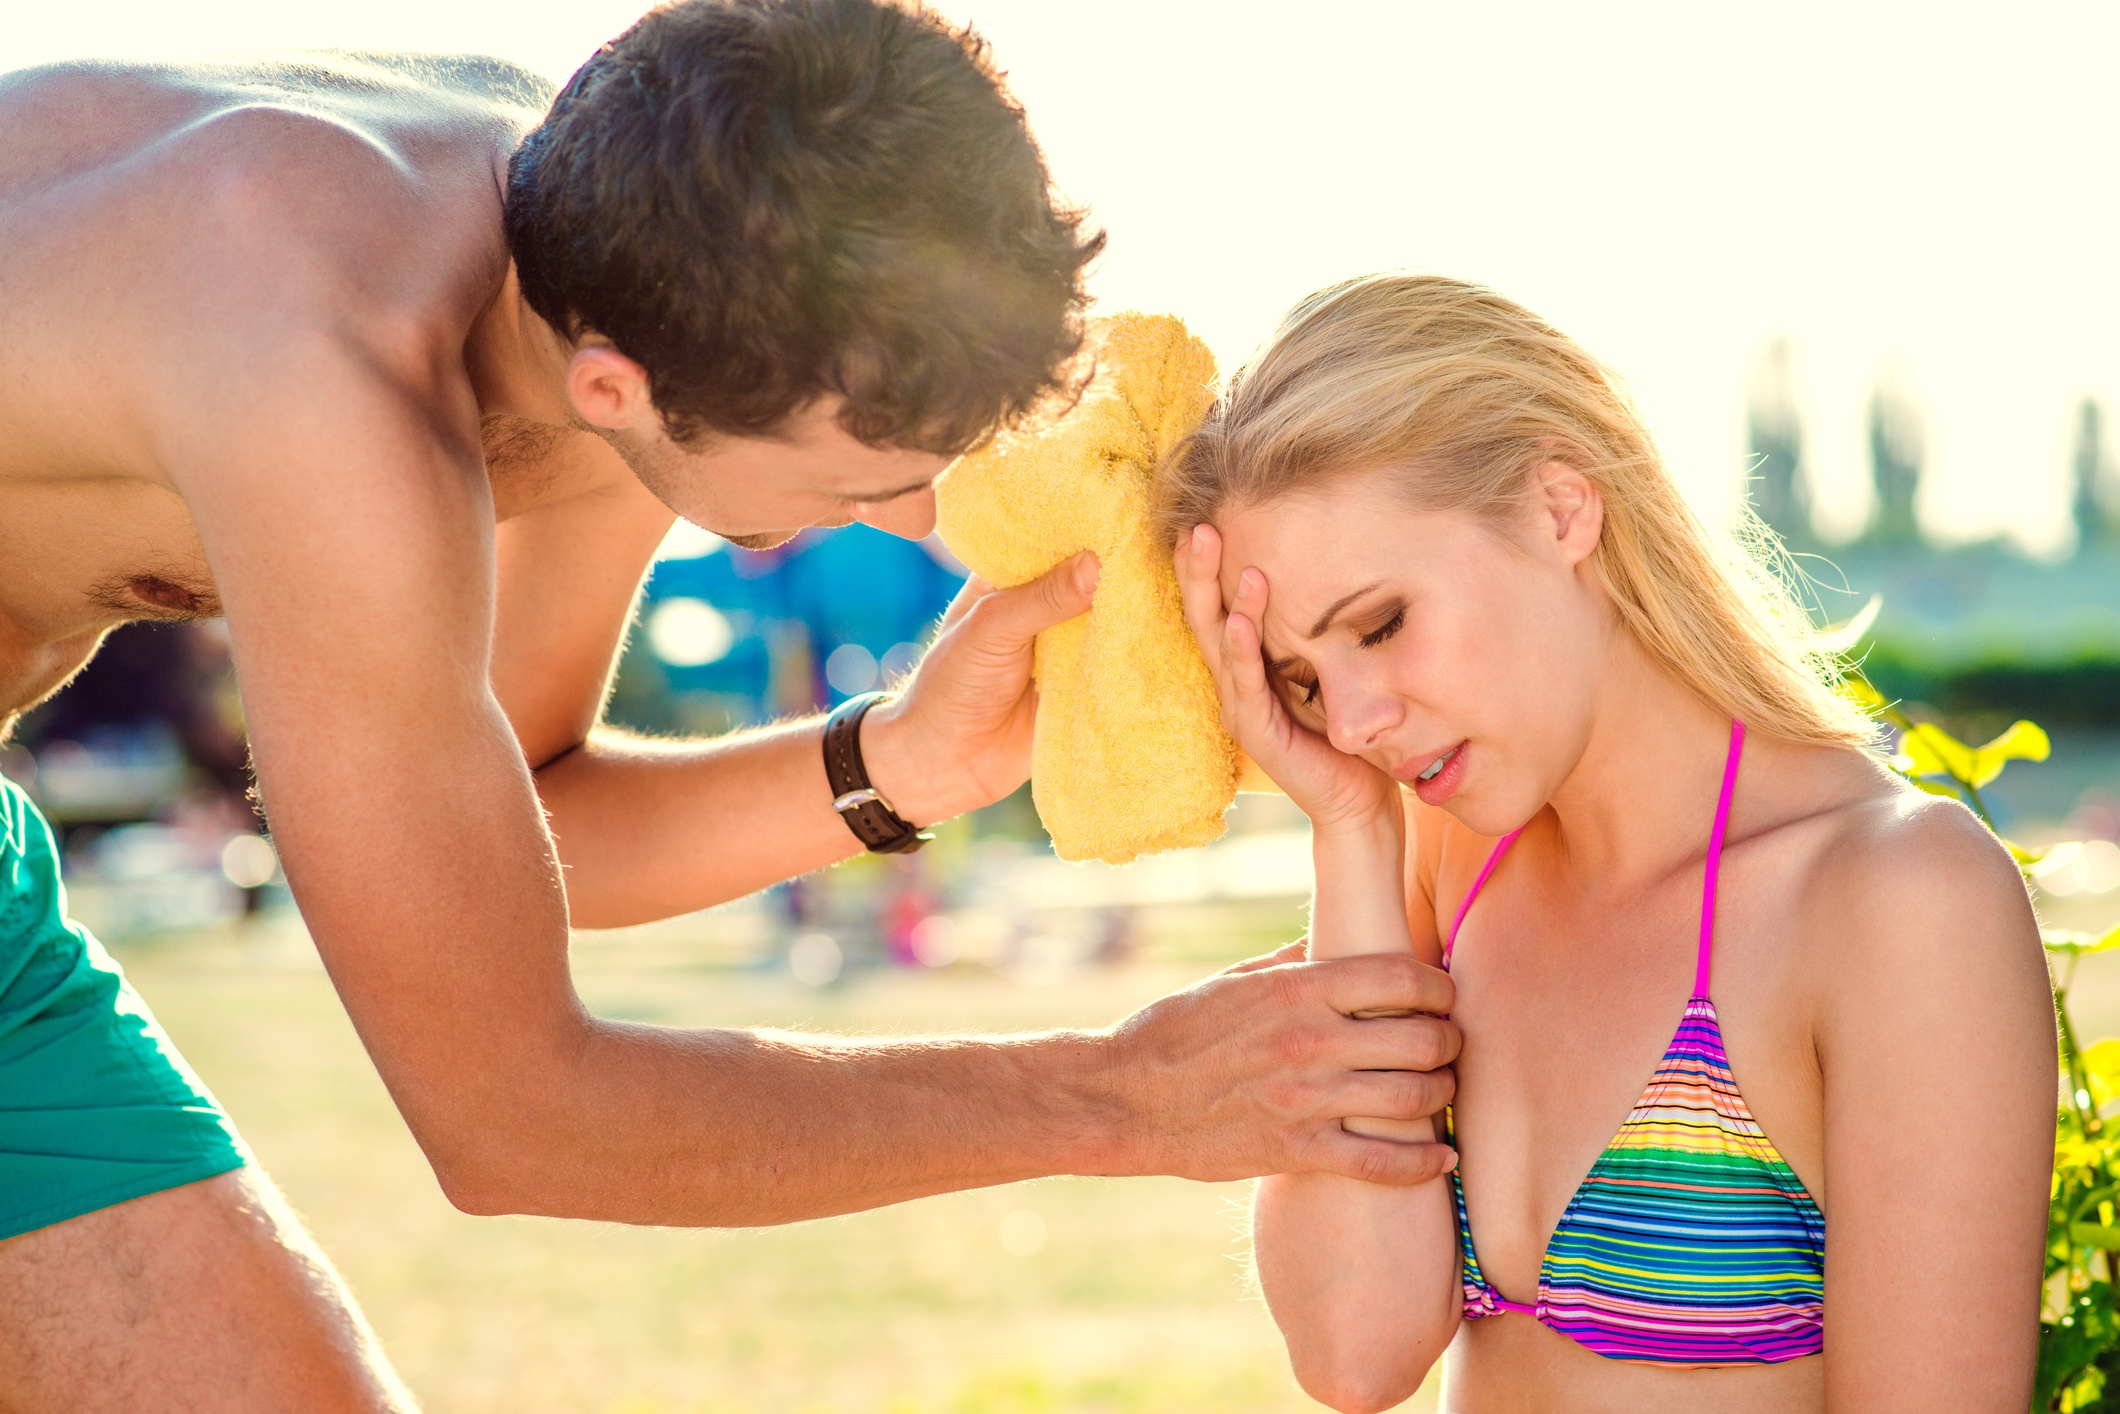 young woman with heat stroke